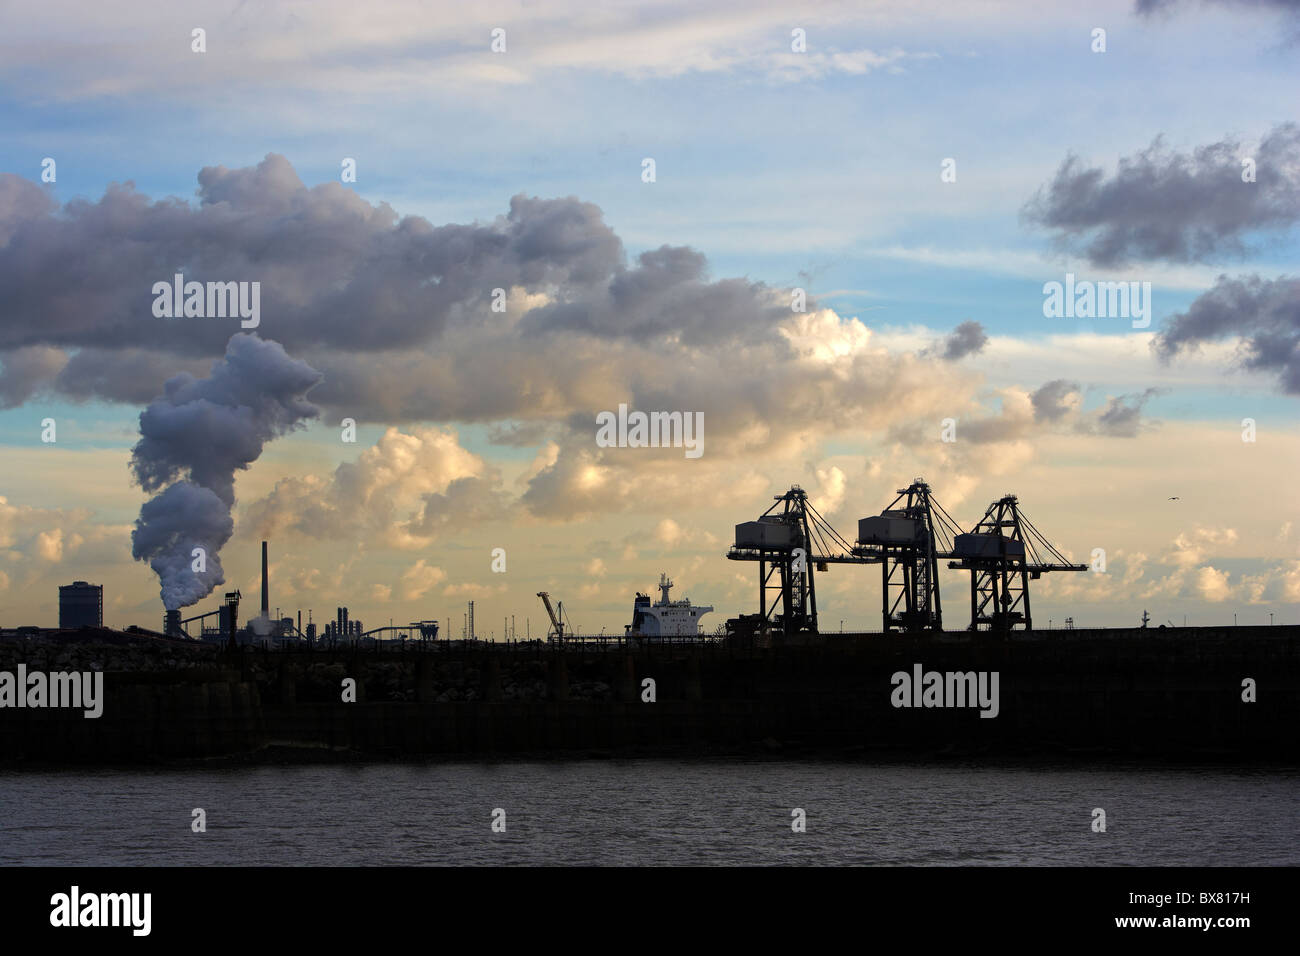 Cranes and Steelworks, Port Talbot, South Wales, UK - Stock Image